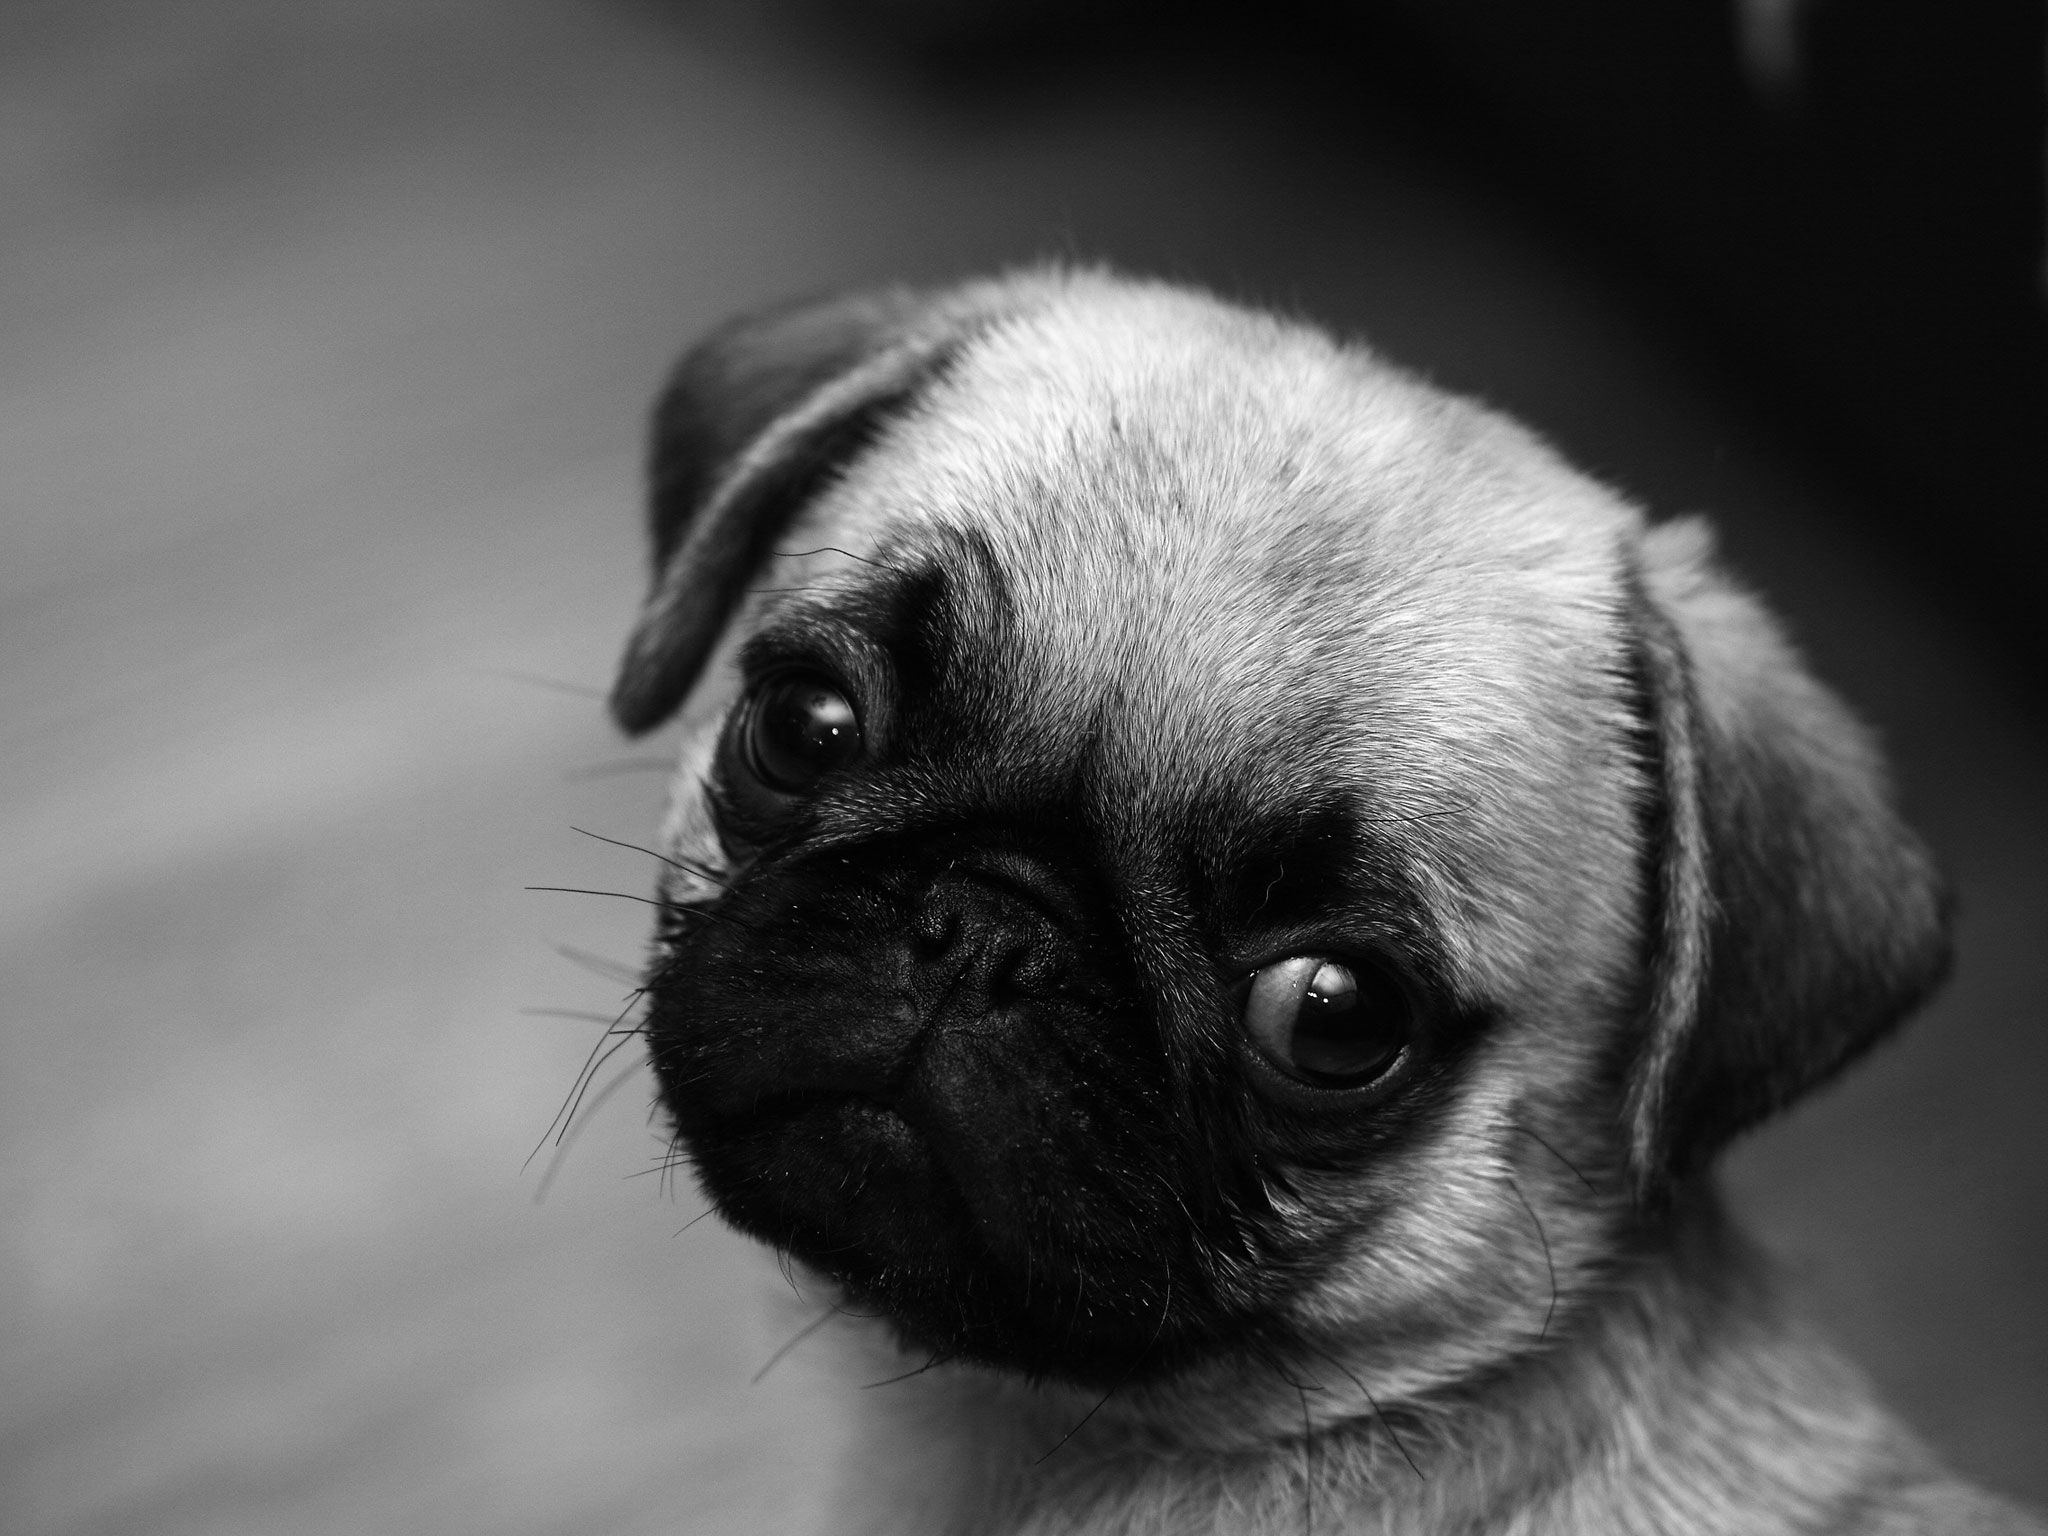 Cute Pug Puppy Wallpaper Screensaver Background Cute Pugs